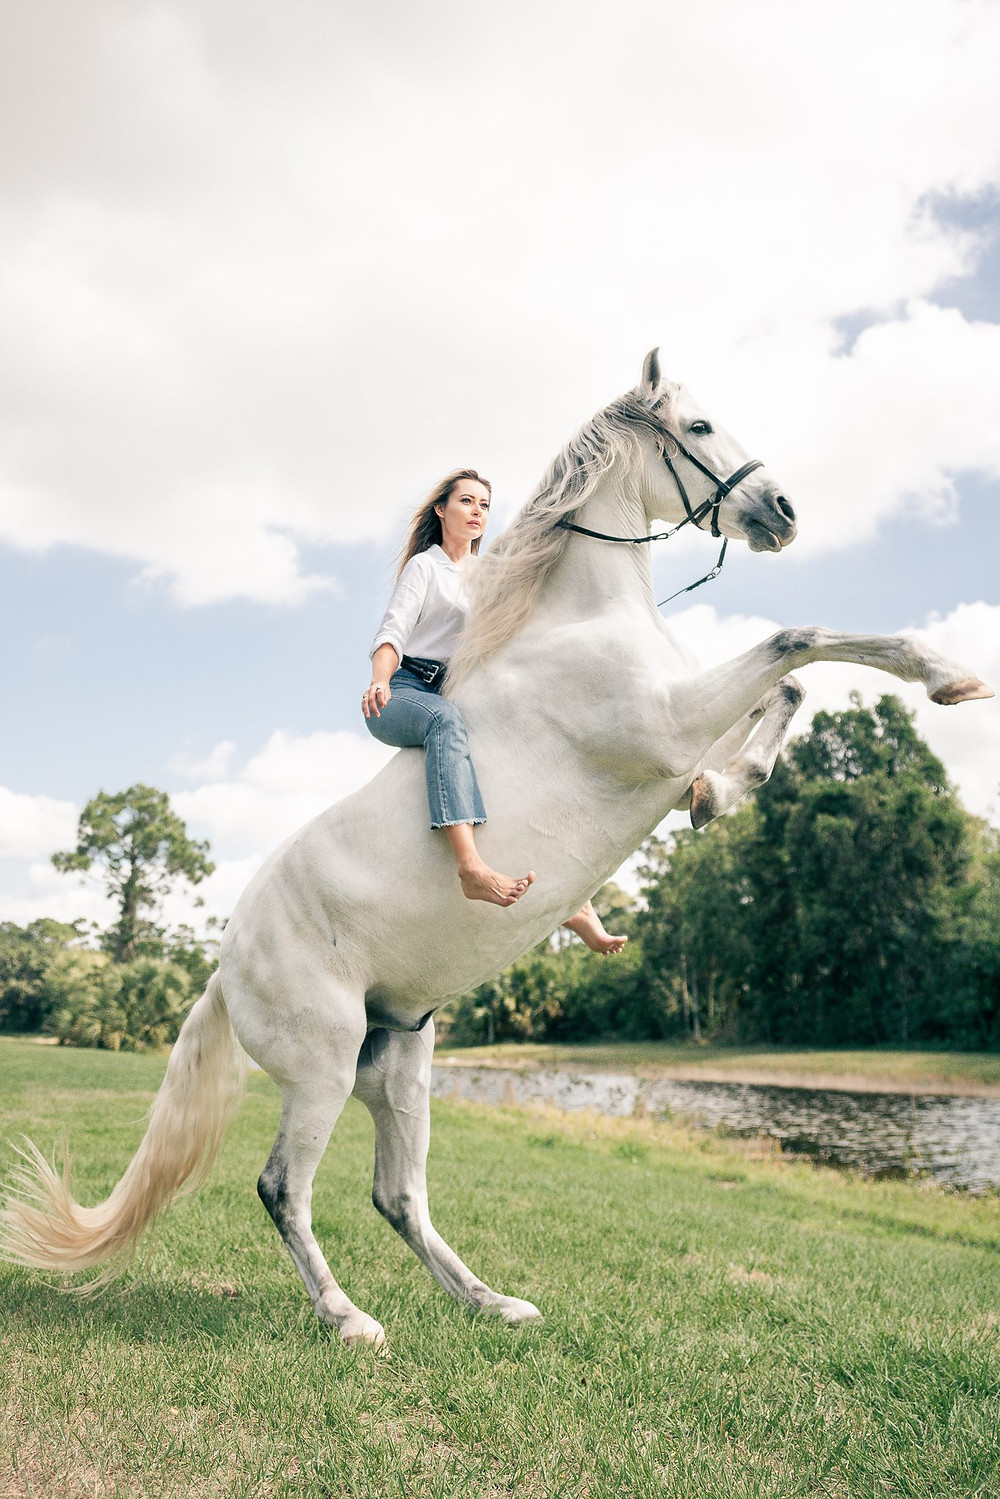 a blonde girl sitting on her horse in a white shirt and jeans while her horse is rearing on his hind legs